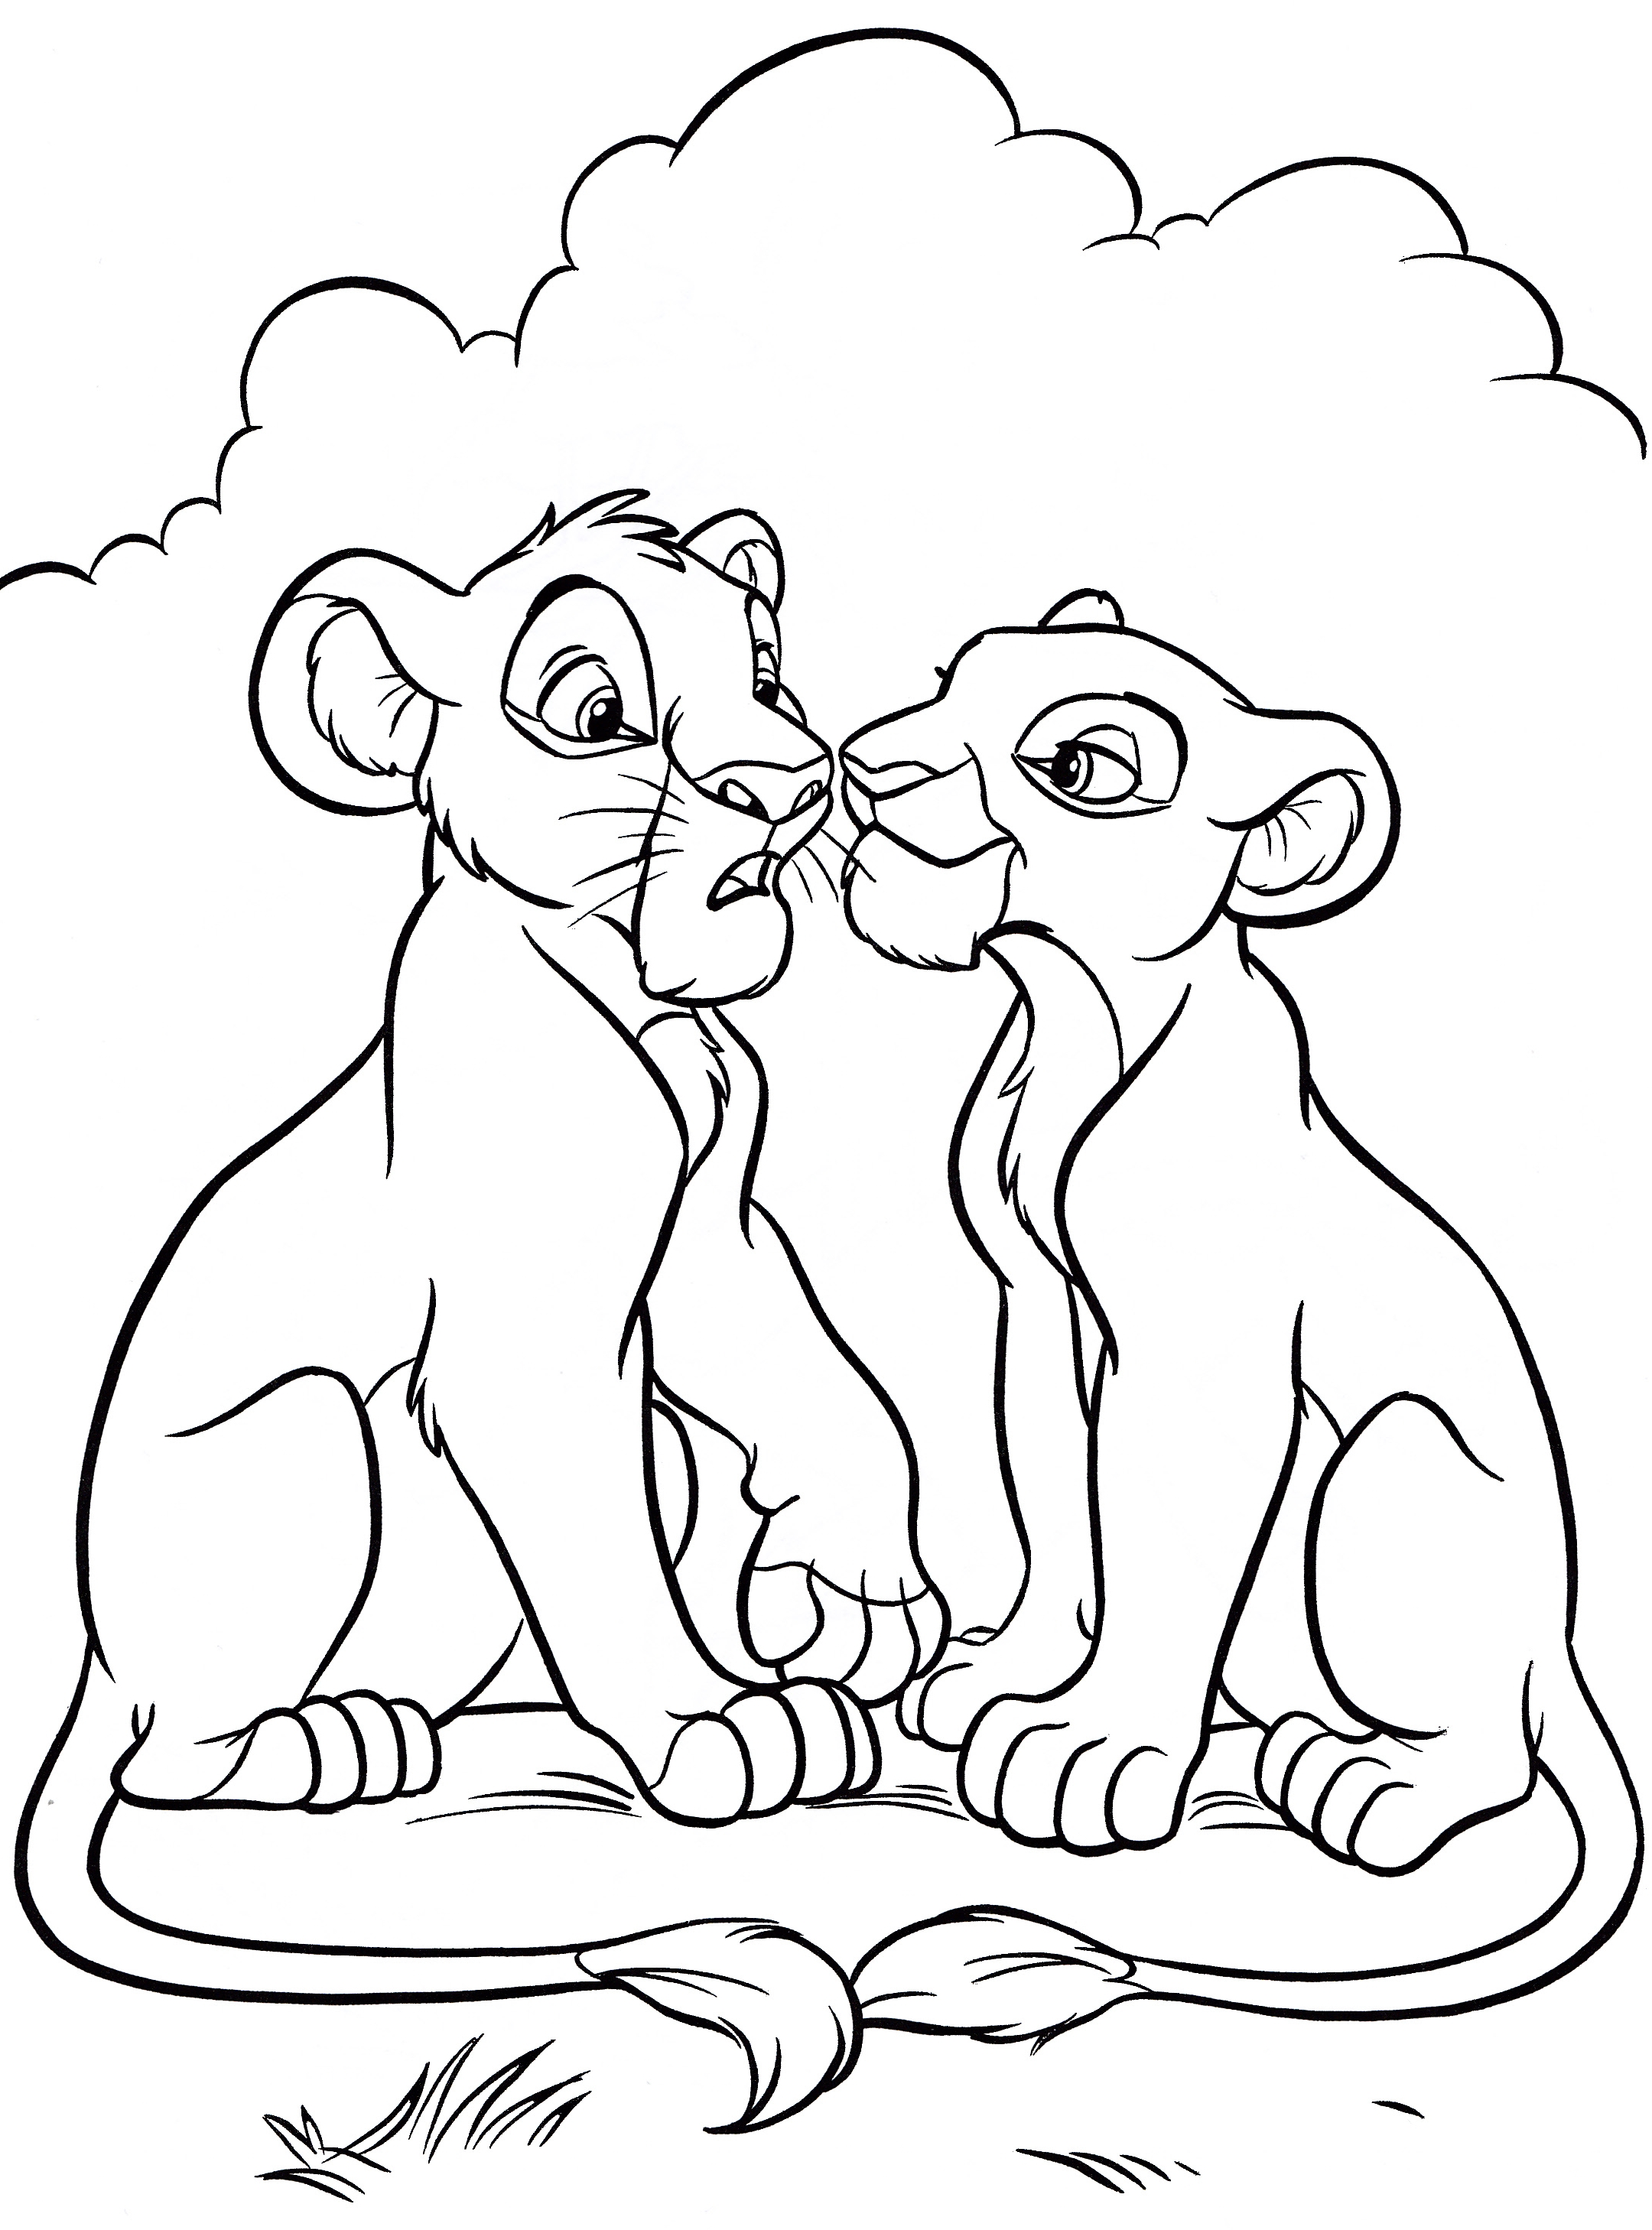 Walt Disney Characters images Walt Disney Coloring Pages - Simba ...